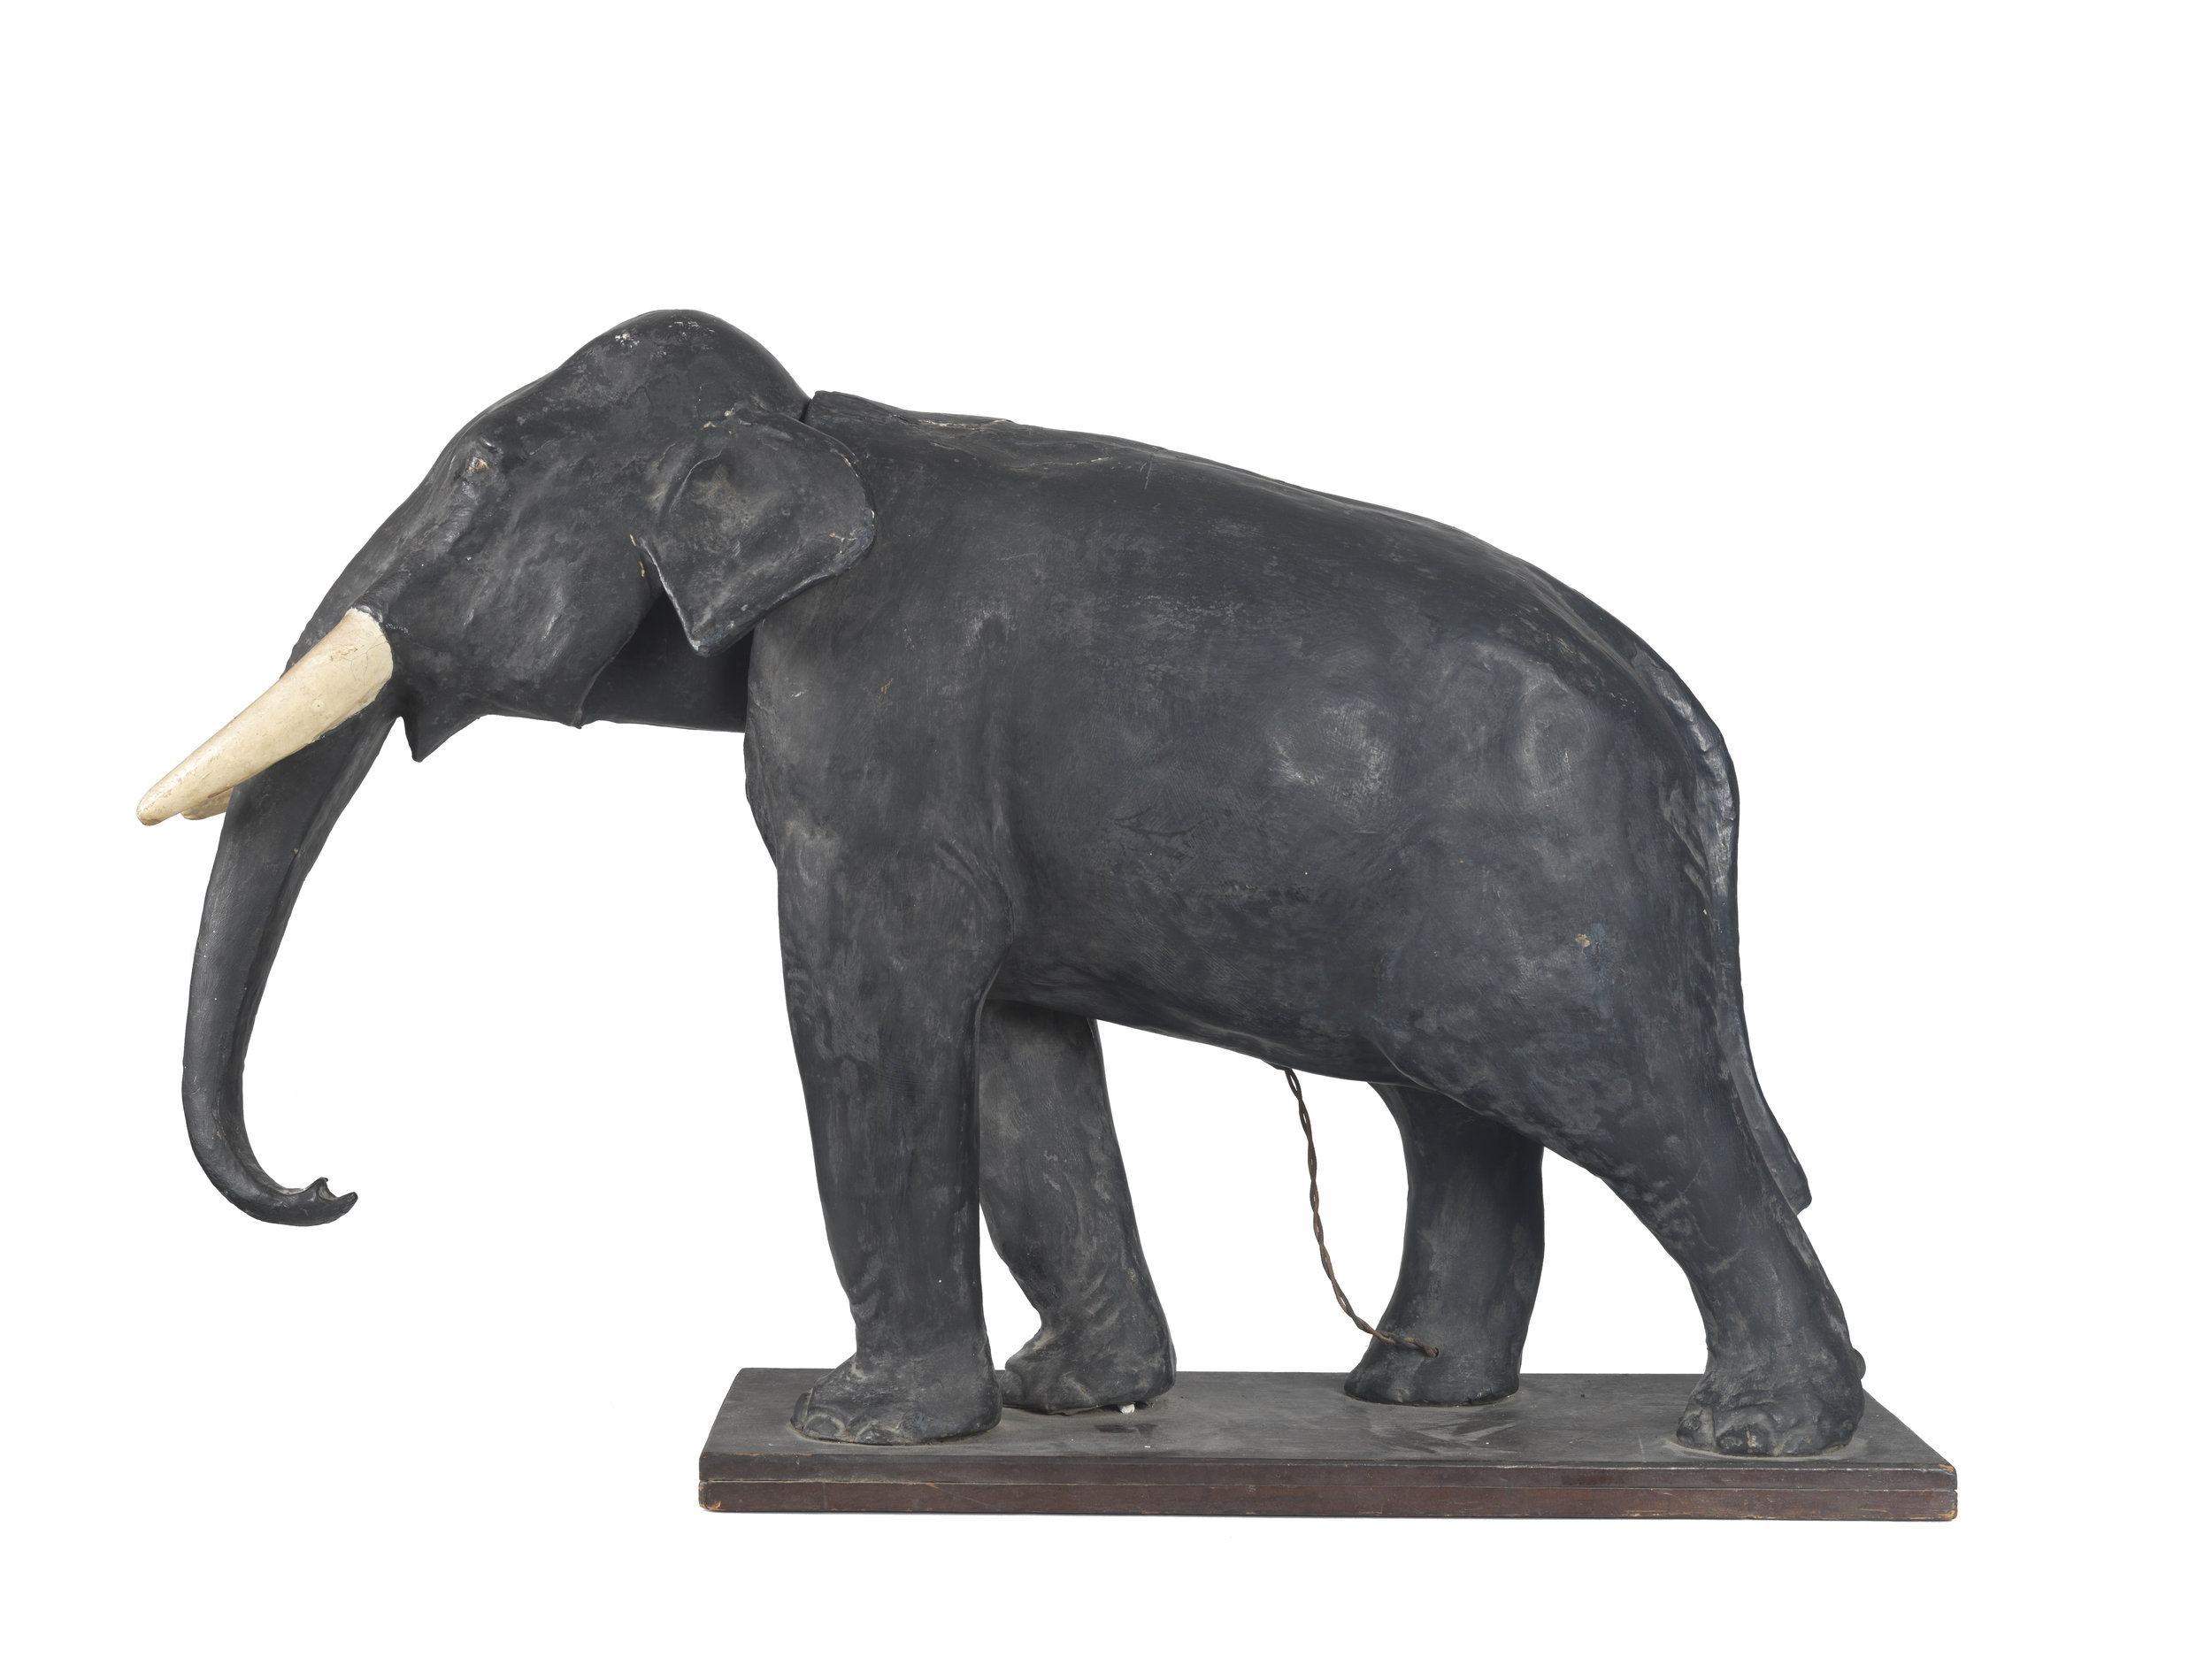 Large papier-mâché 'nodder' elephant automaton c.1900 in original condition.   Dimensions L77cm H48cm W25cm  SOLD.